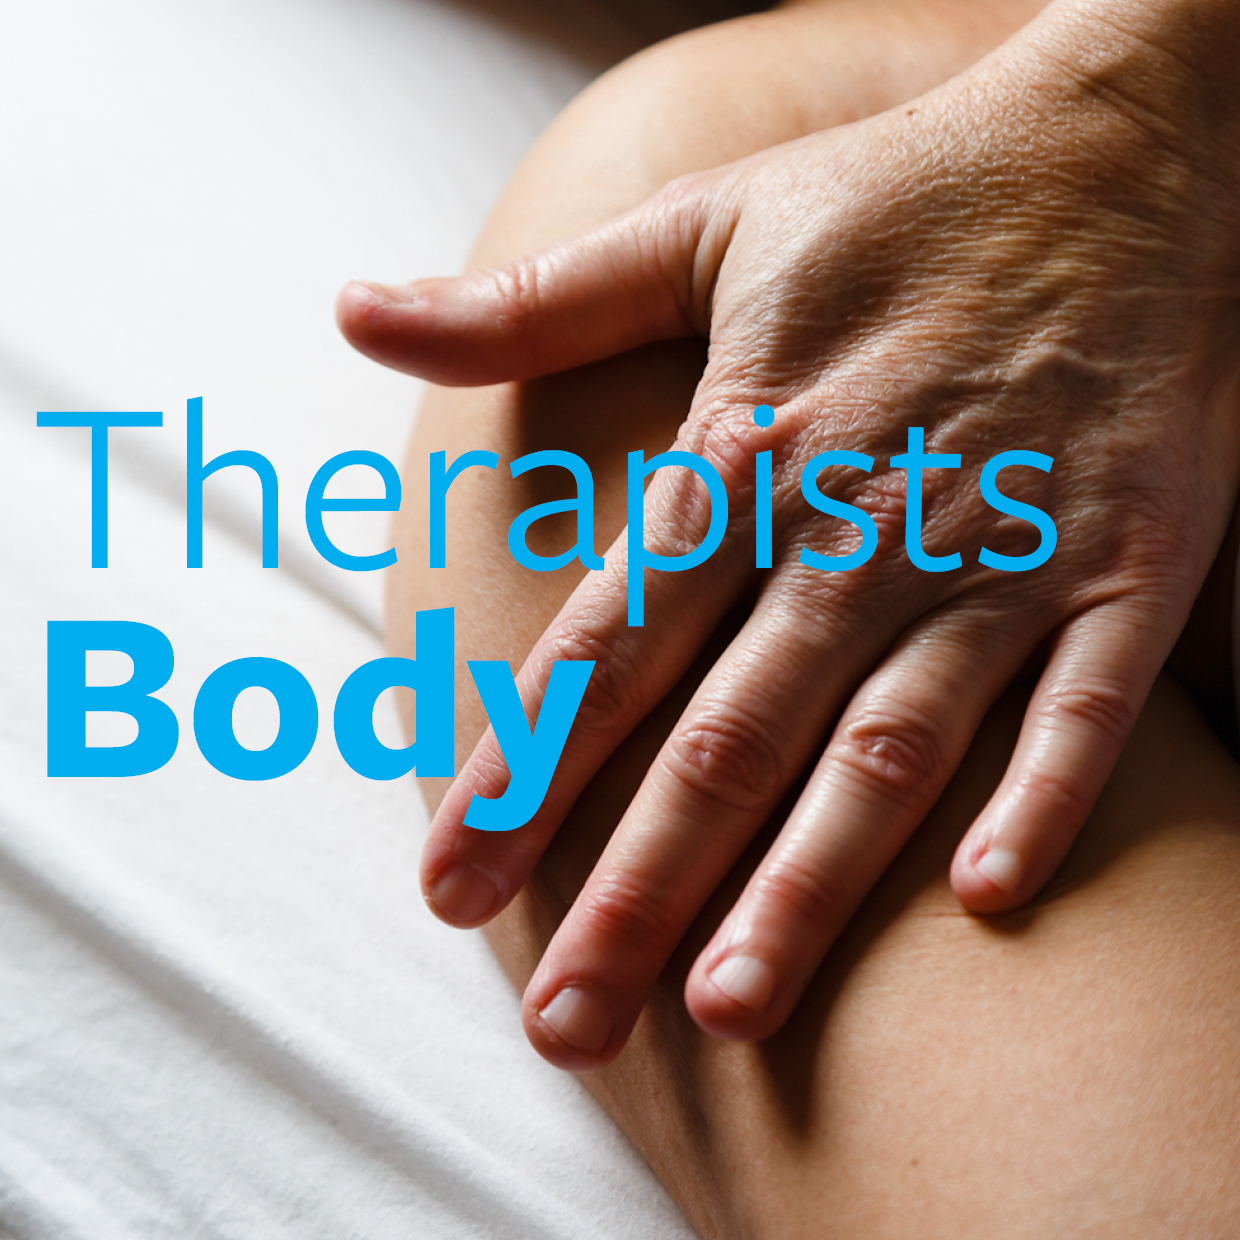 Therapists who work with bodies in Lewes